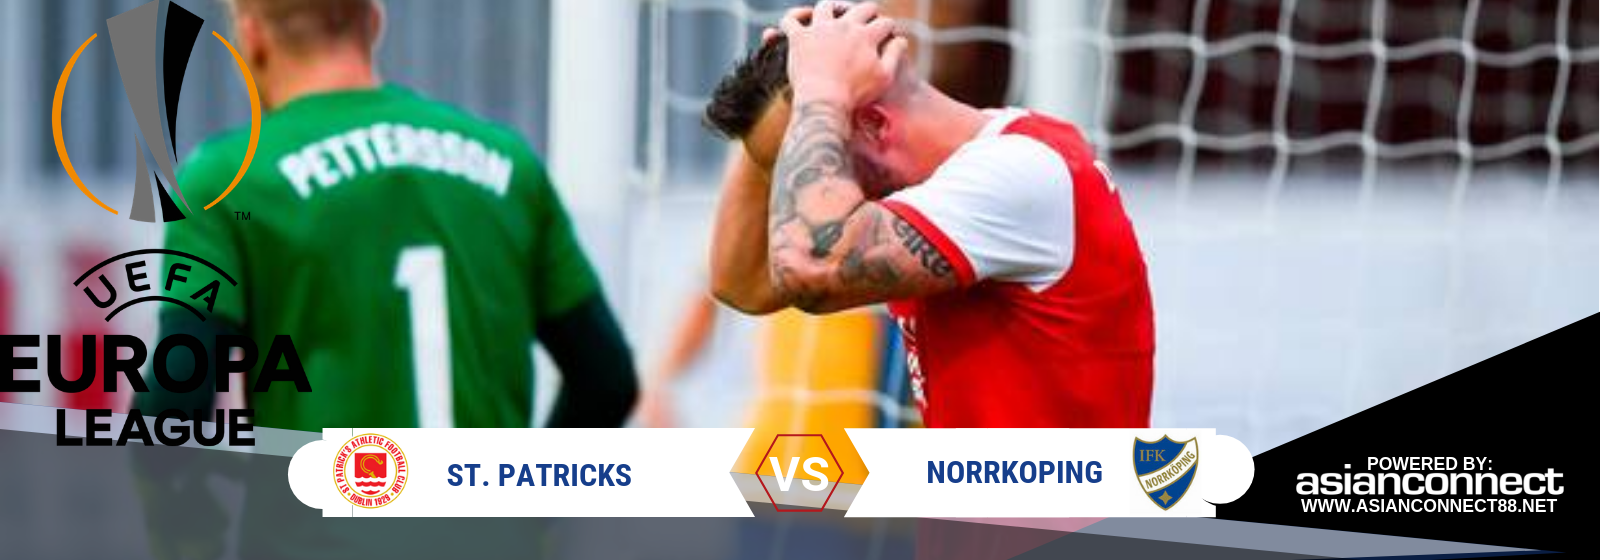 UEL Qualifier St. Patrick Vs. Norrkoping Asian Connect